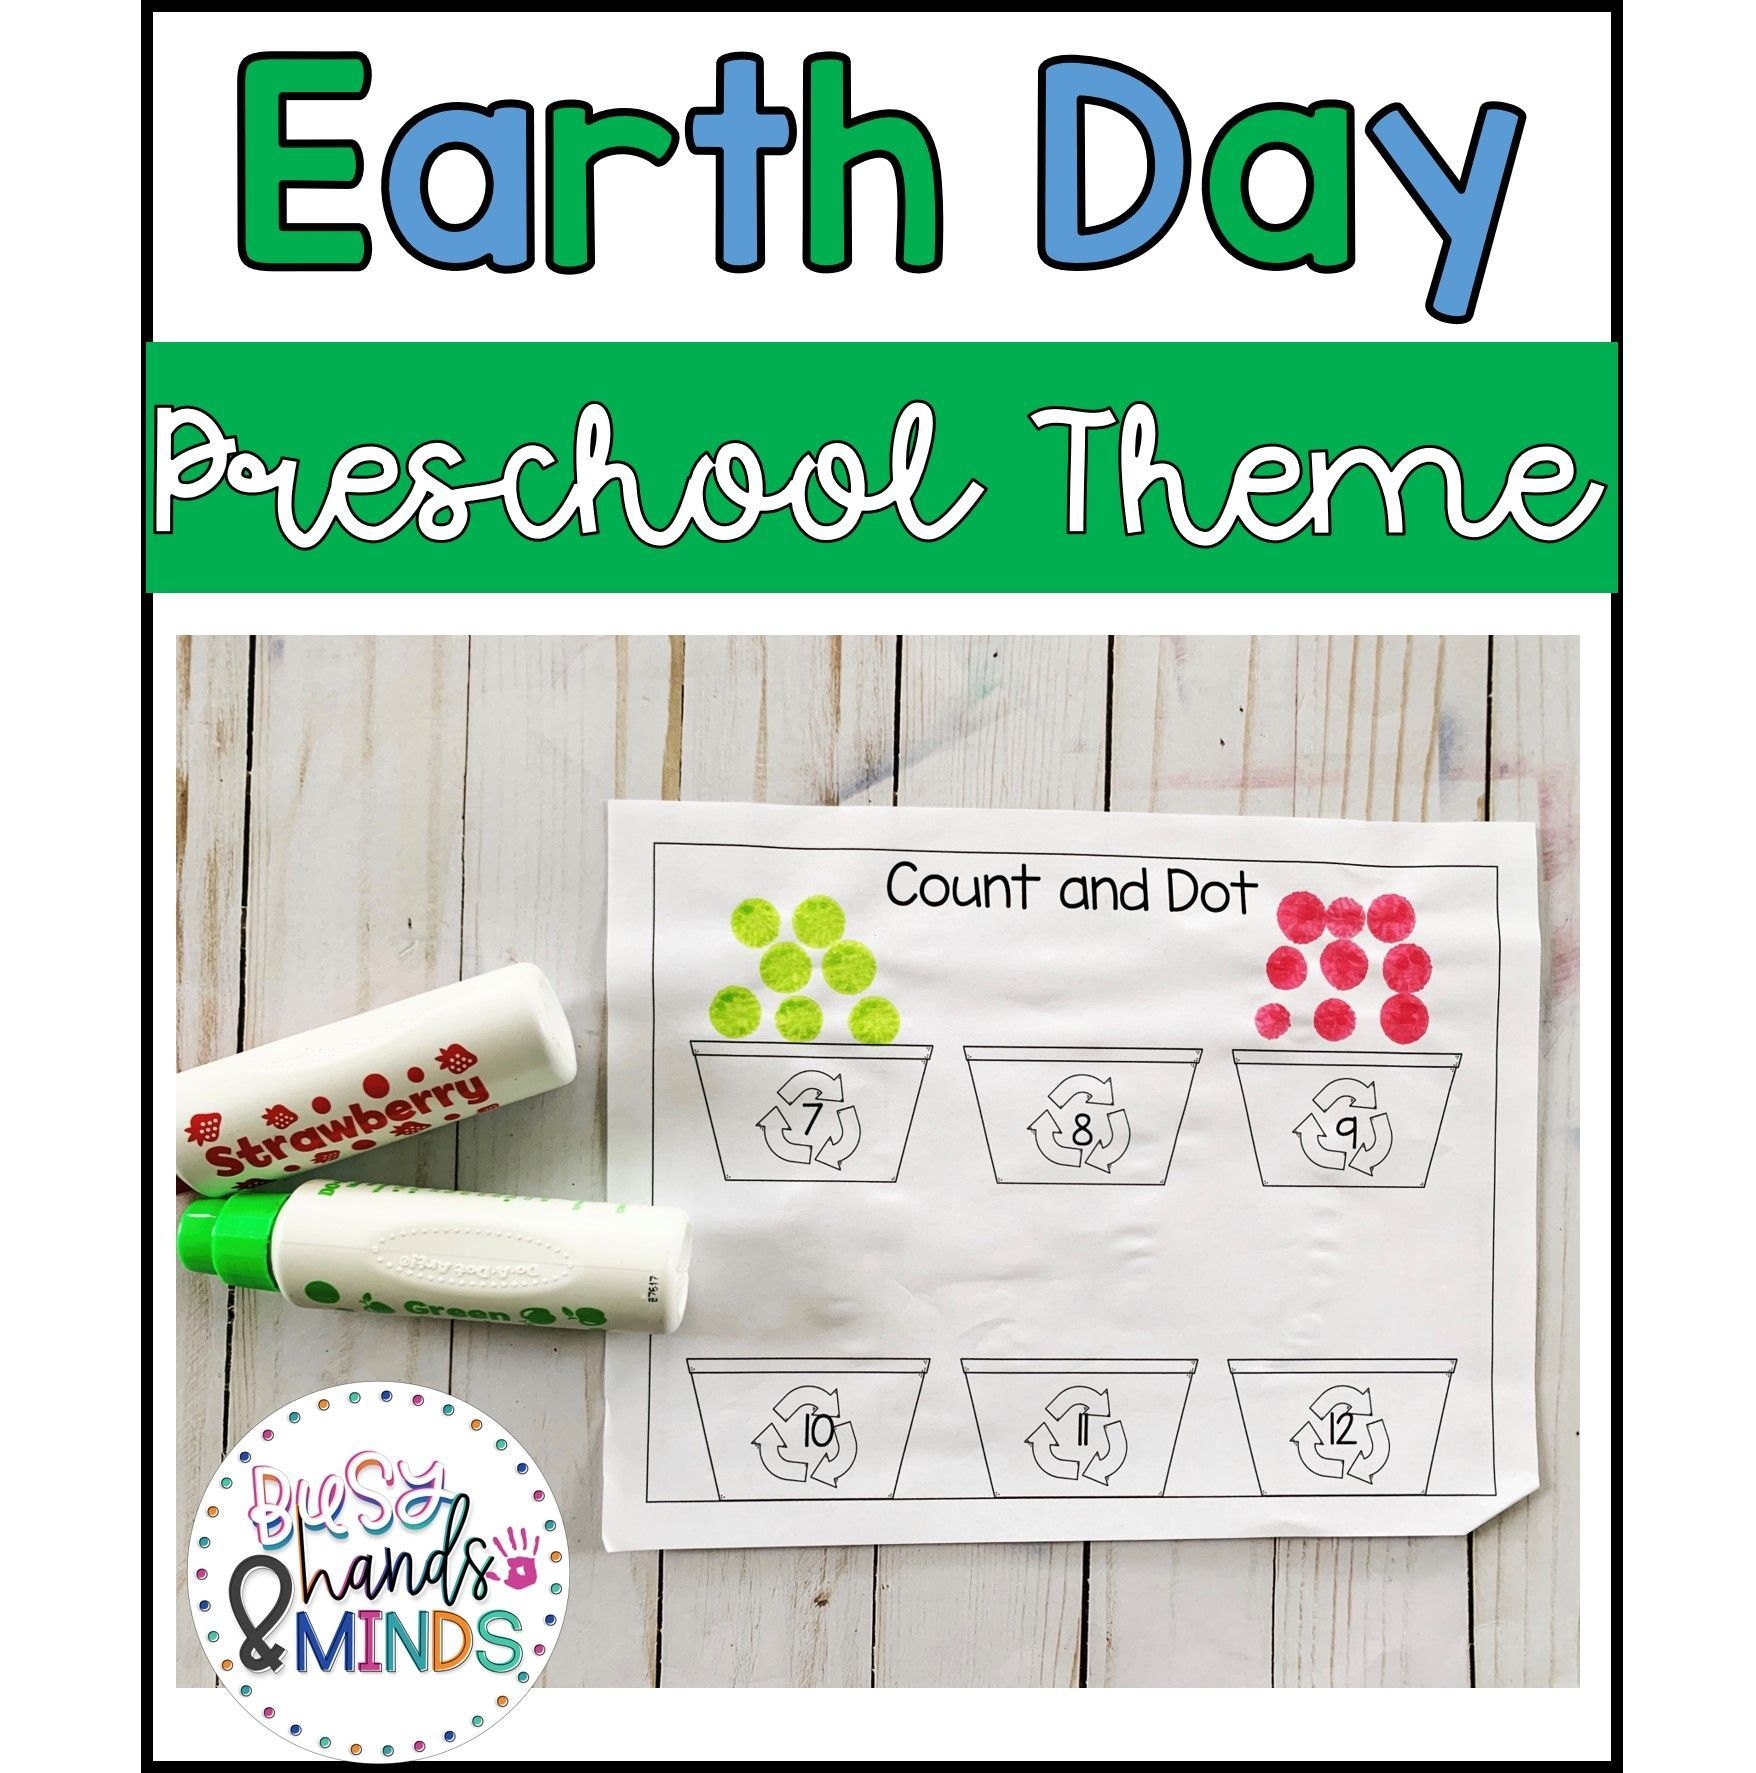 Earth Day Preschool Theme In